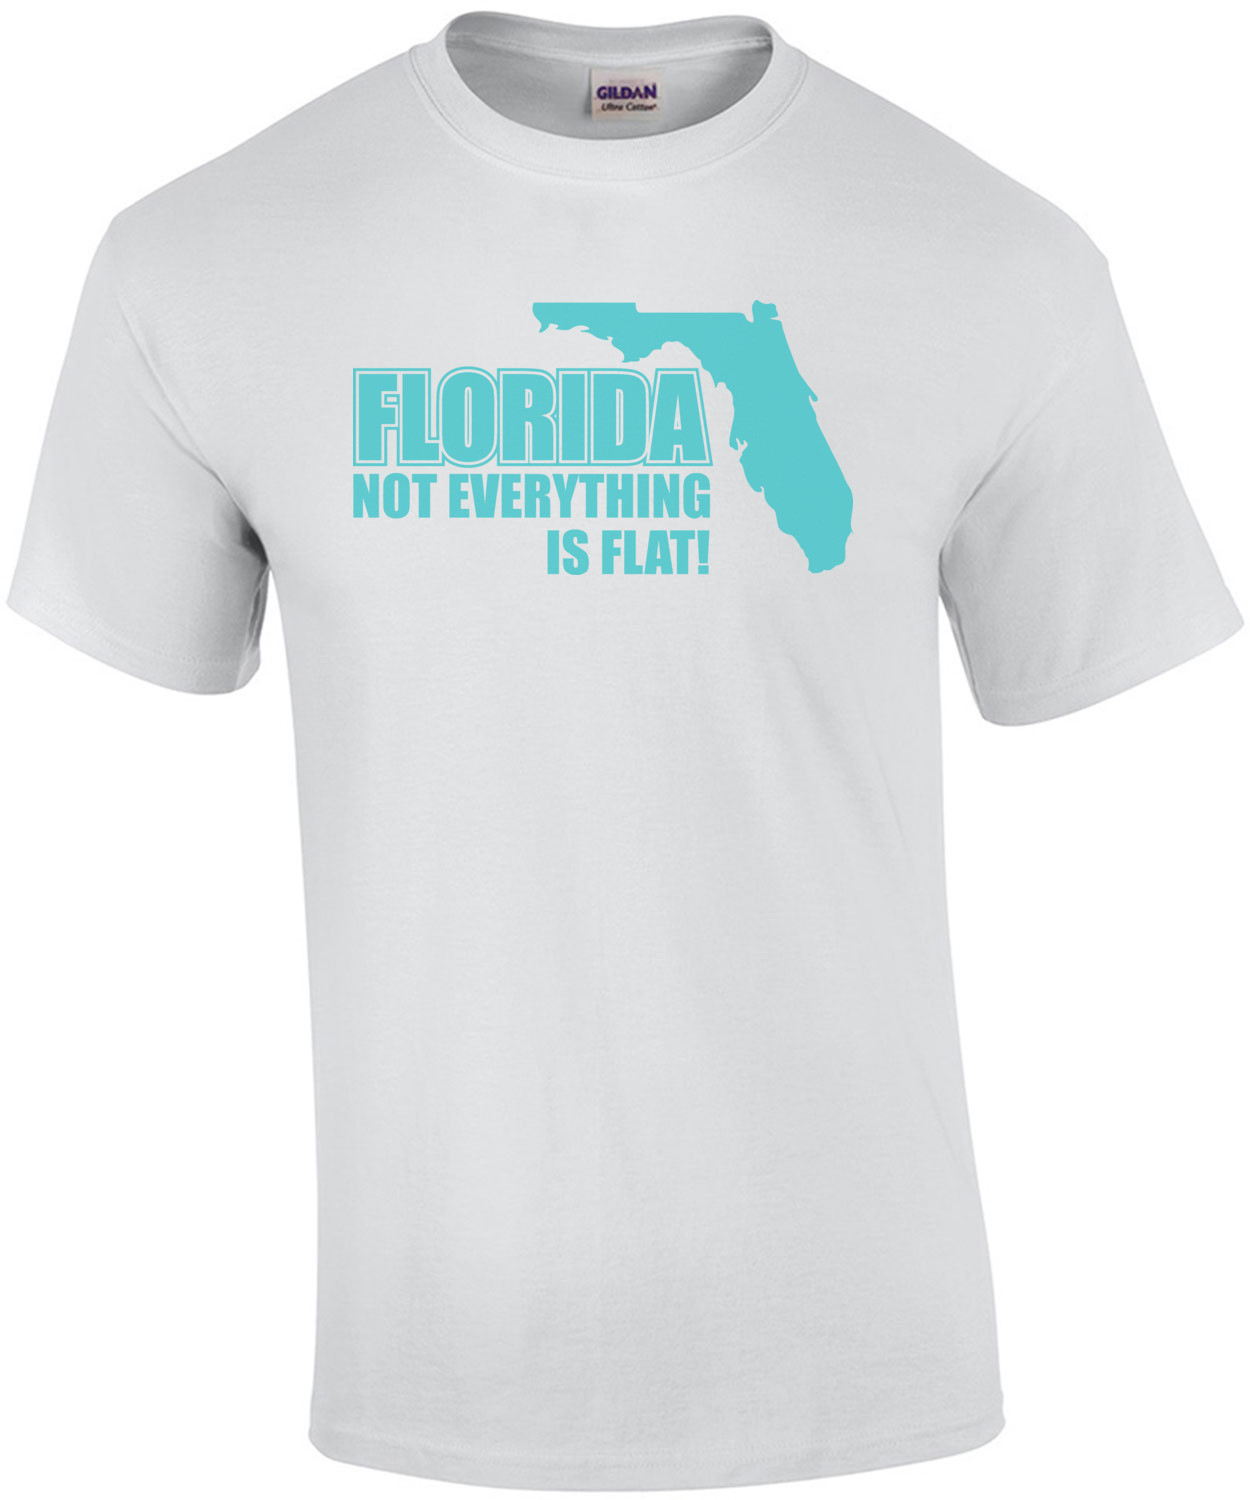 Florida Not Everything Is Flat T-shirt